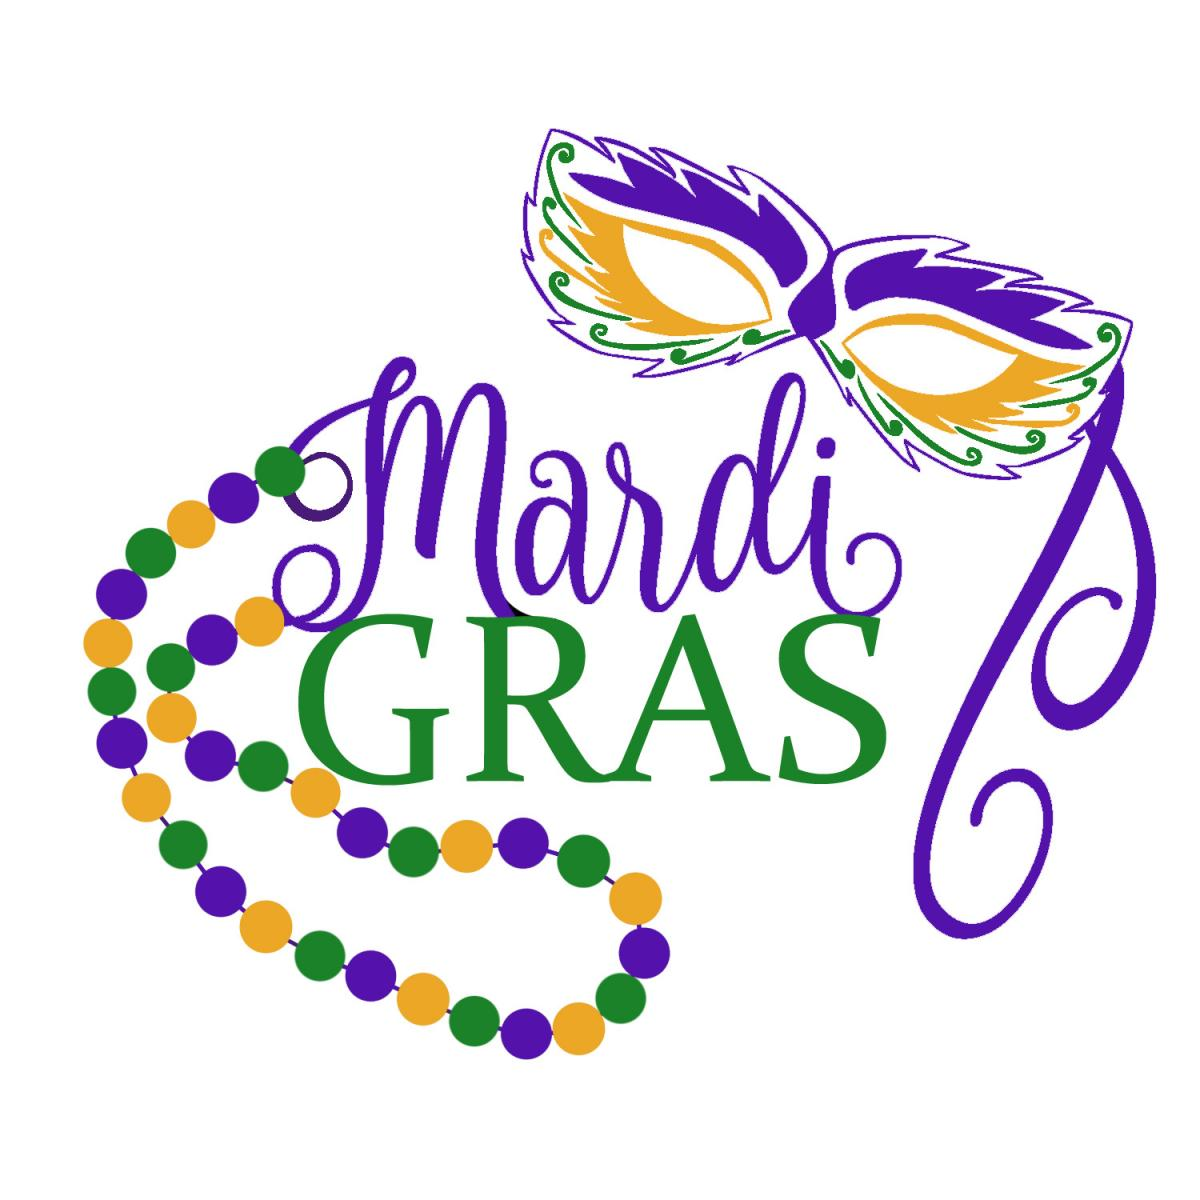 clipart royalty free download Mardi gras clipart. United way of calvert.